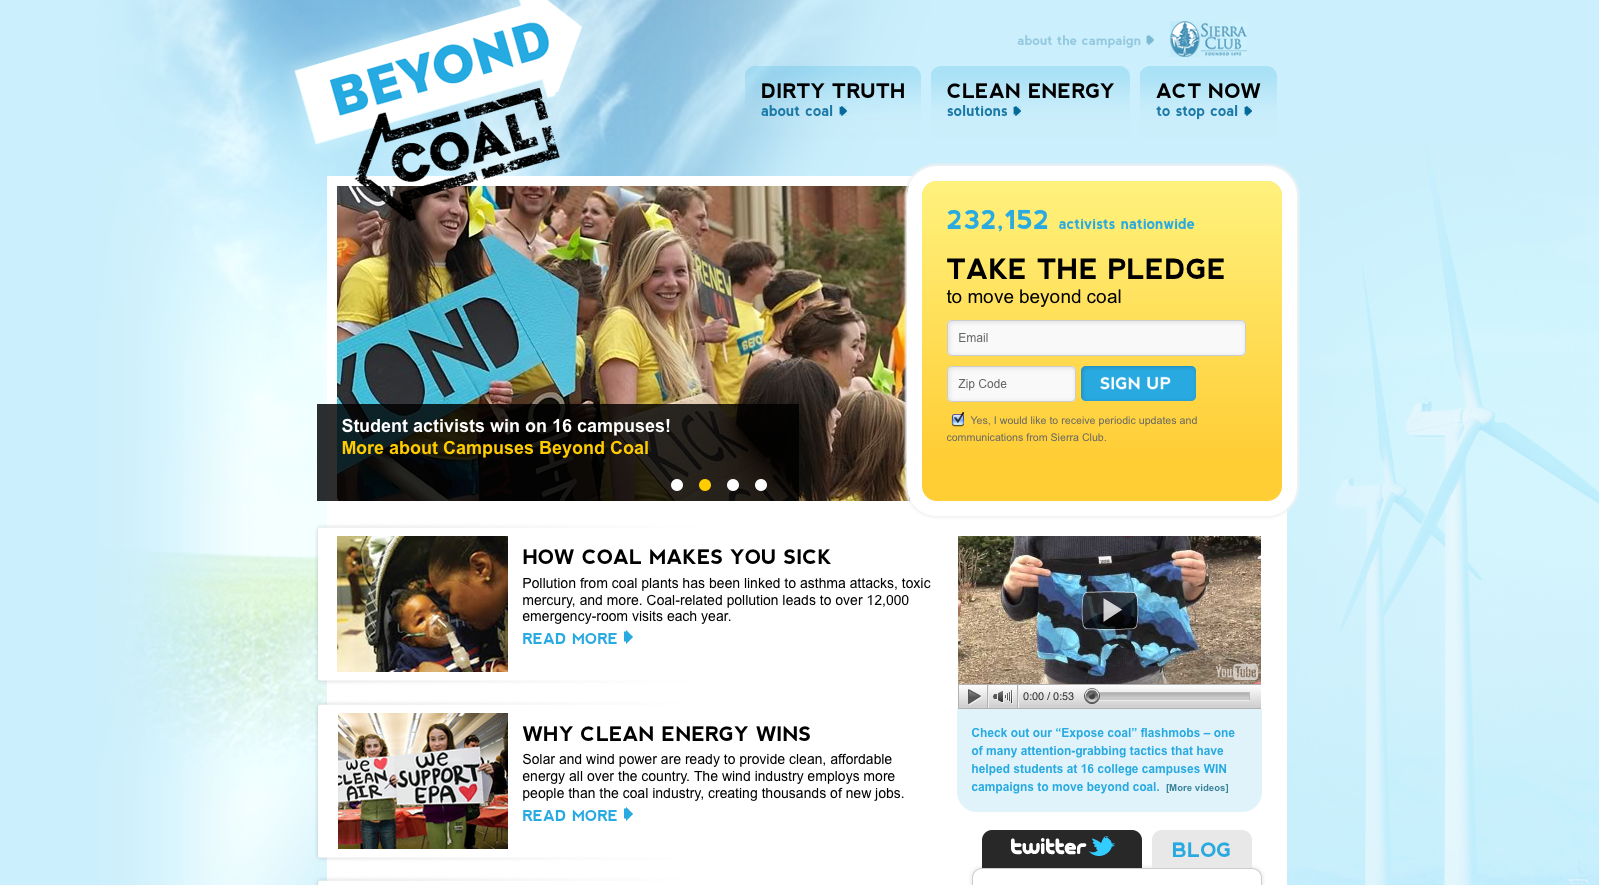 BeyondCoal.org launched for the Sierra Club